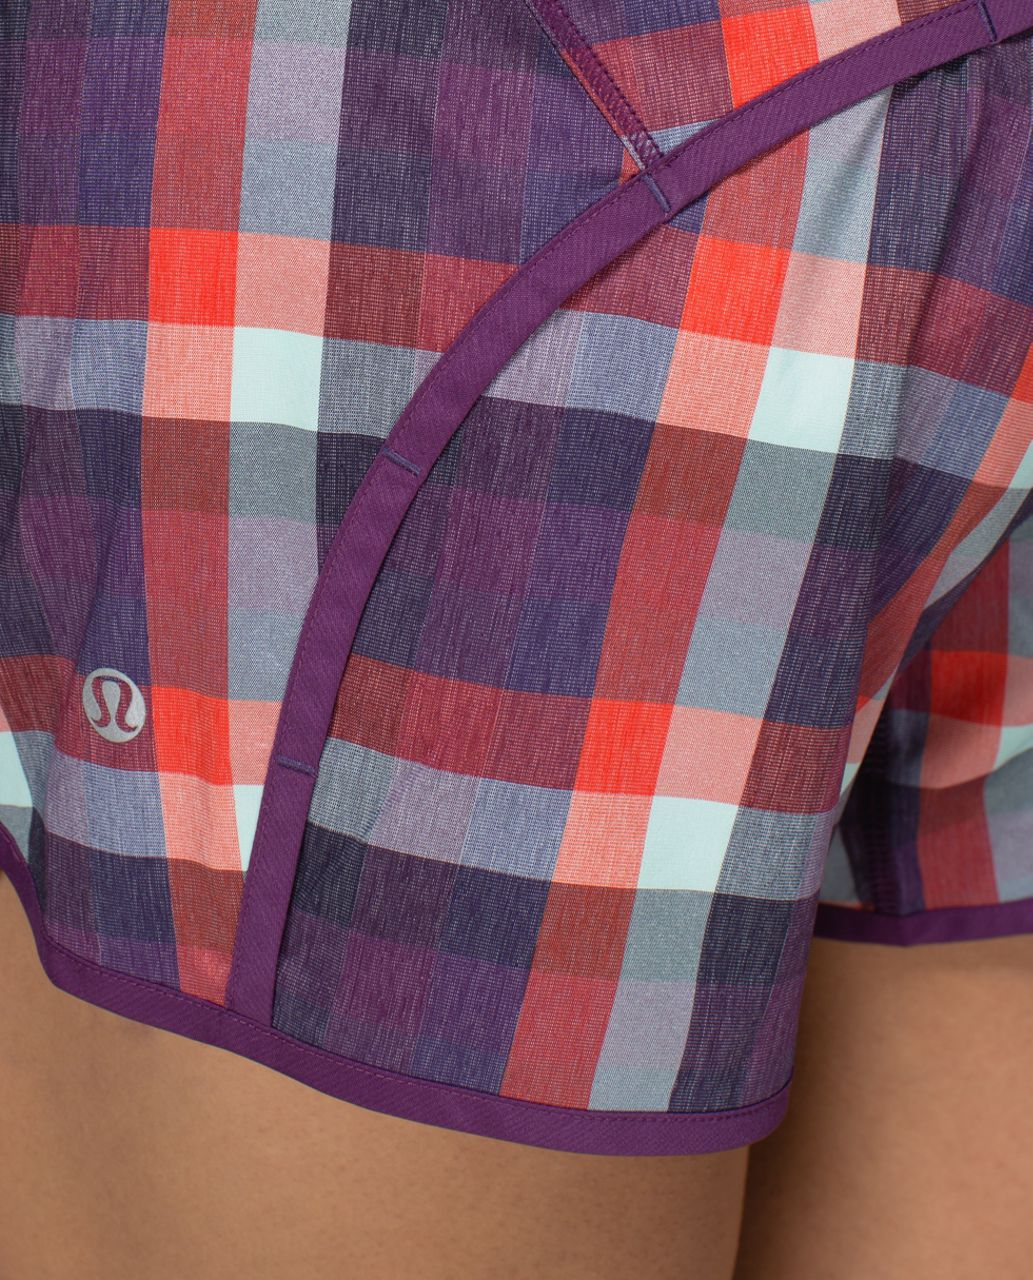 Lululemon Run Times Short *2-way Stretch - Wheezy Check Multi Heathered Berry Yum Yum / Berry Yum Yum / Toothpaste